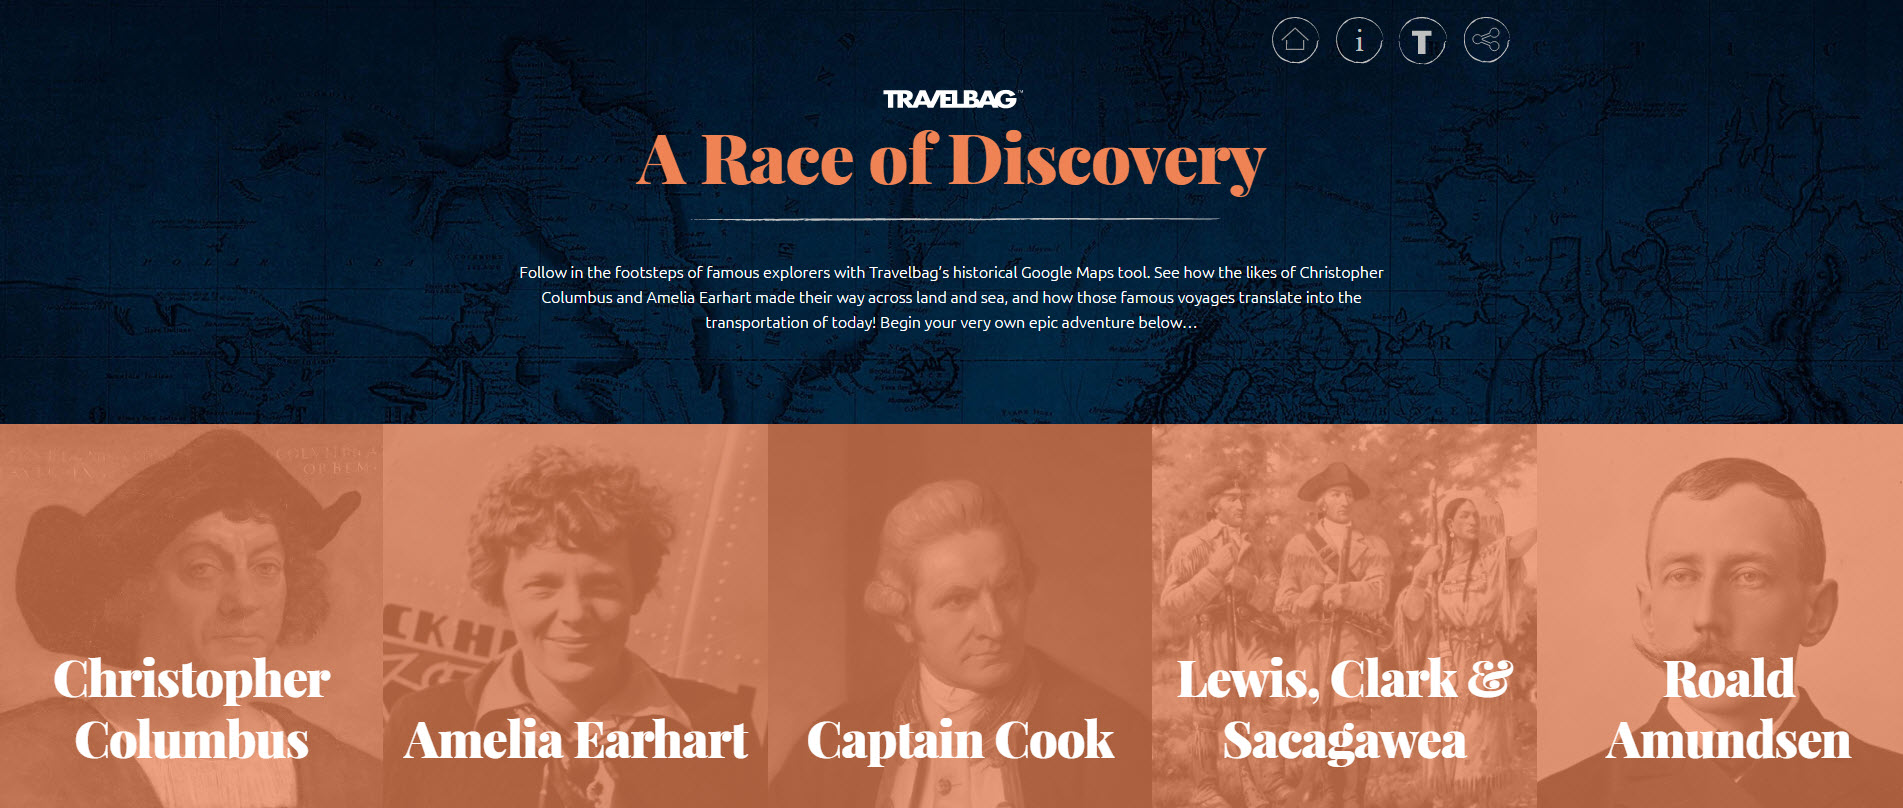 A Race of Discovery